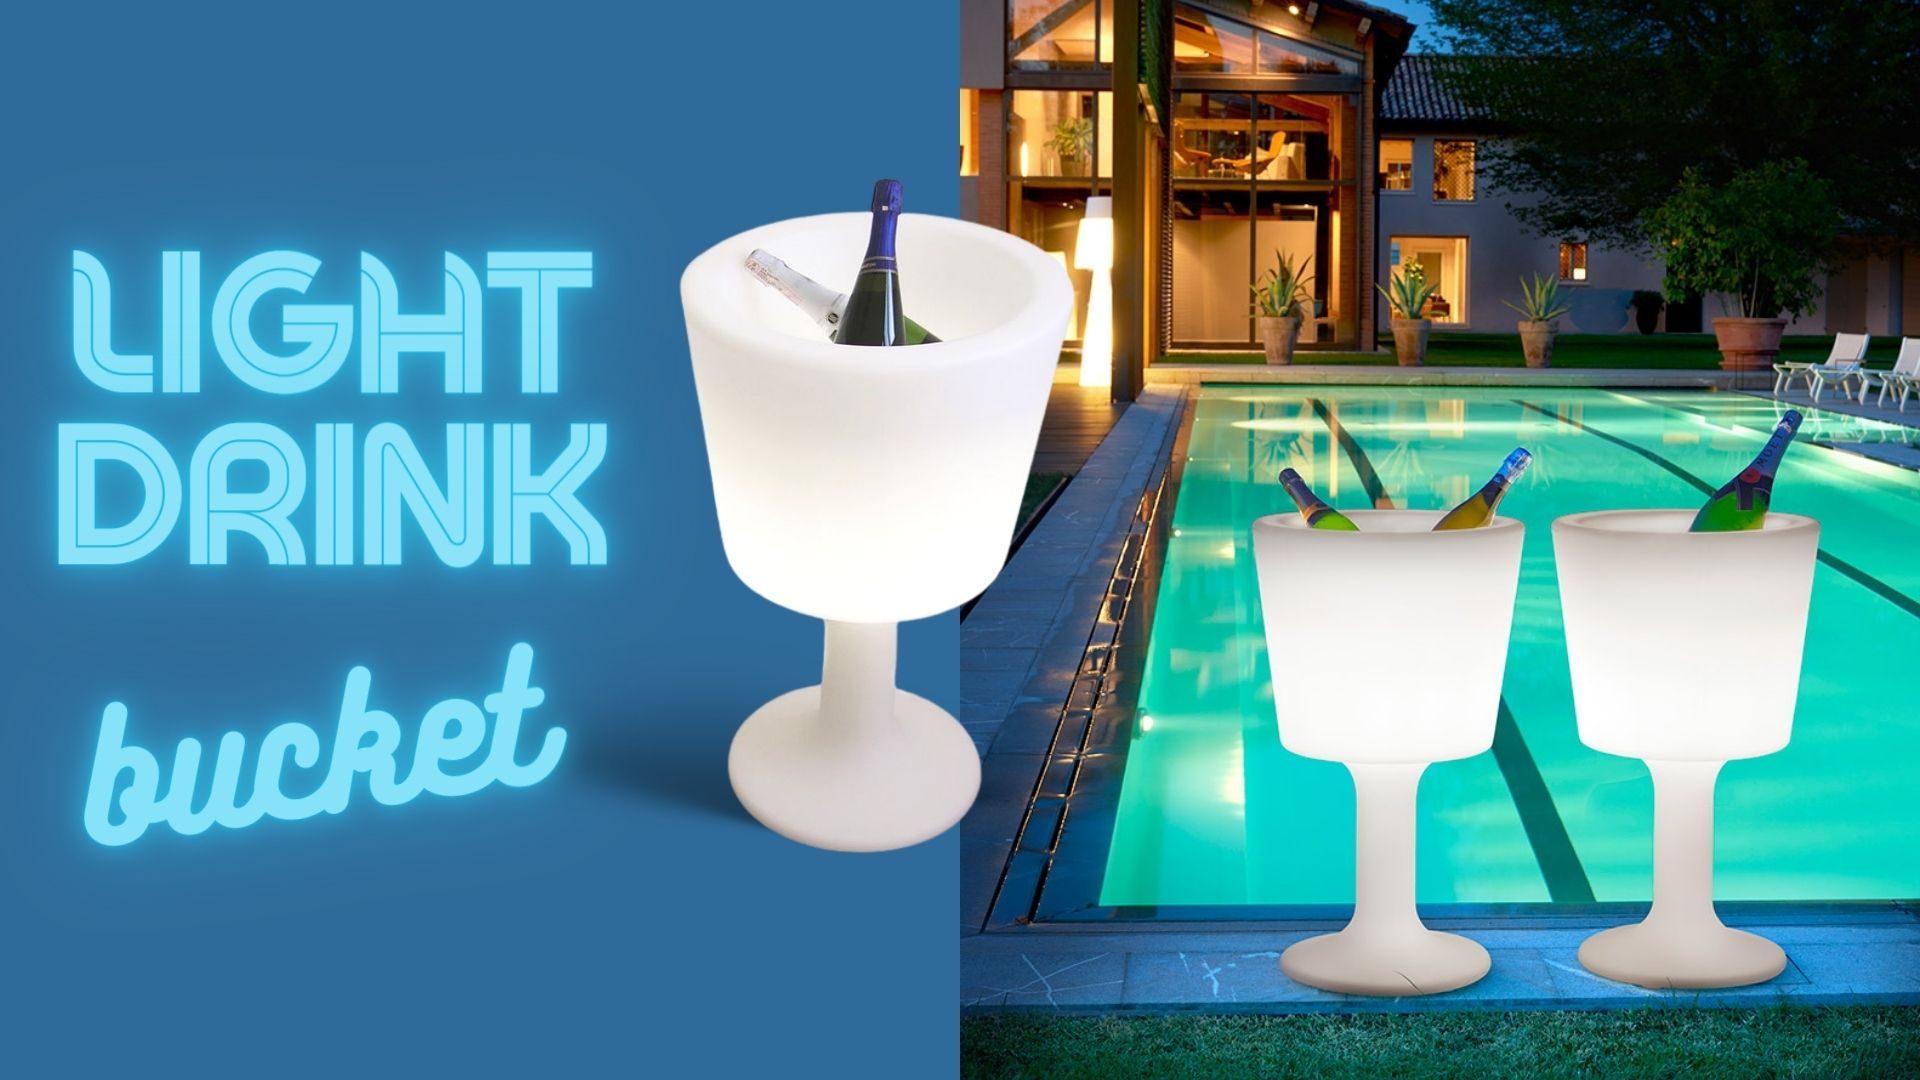 lighted-drink-ice bucket-by-slide